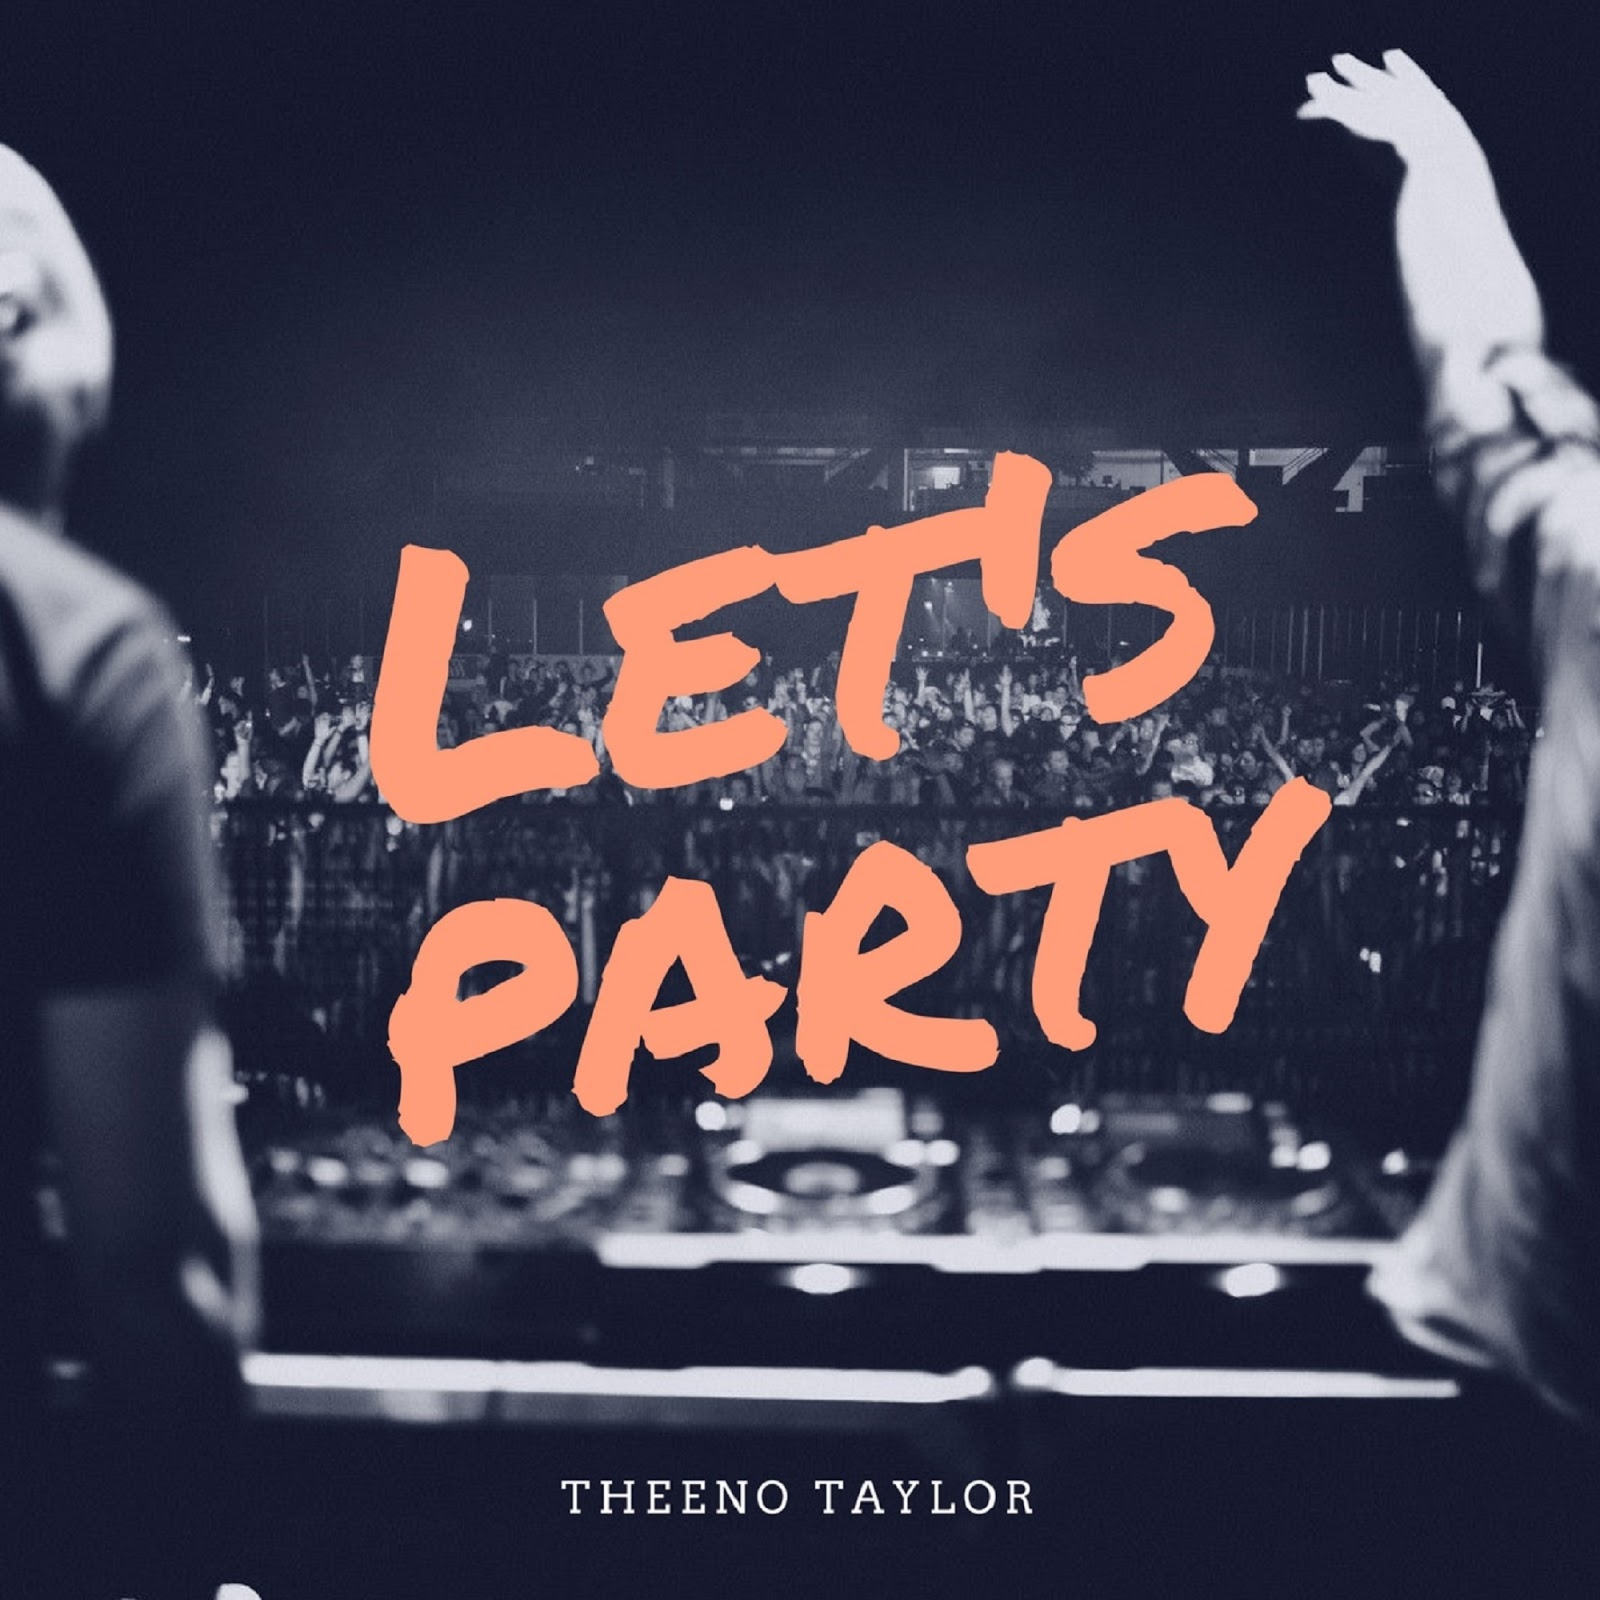 Let's Party by Theeno Taylor